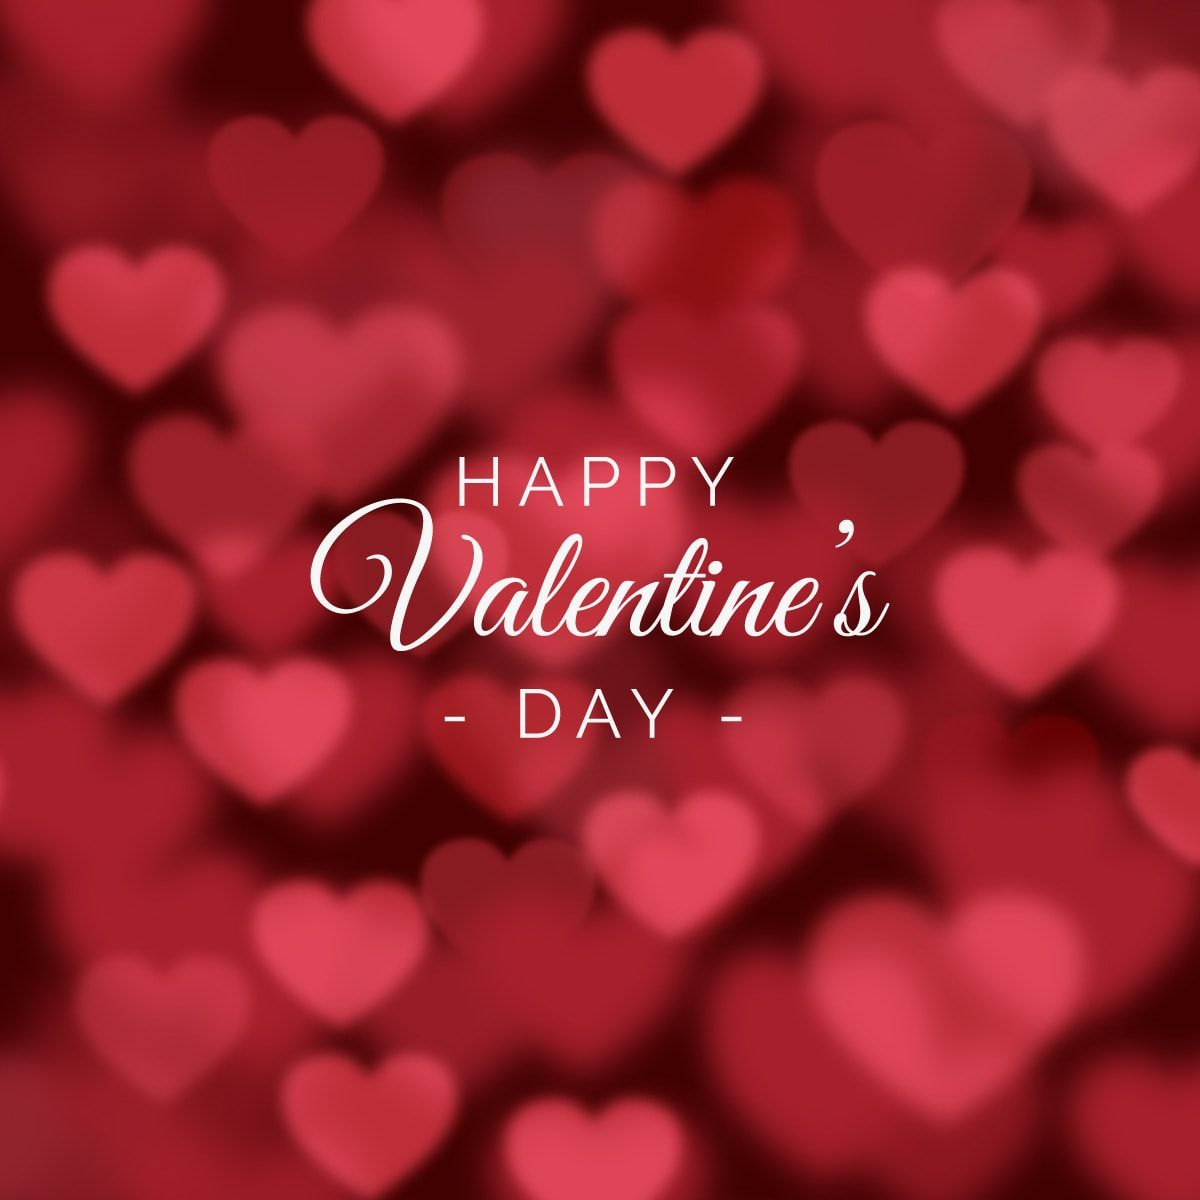 Valentines Day Wallpapers   Top Valentines Day Backgrounds 1200x1200